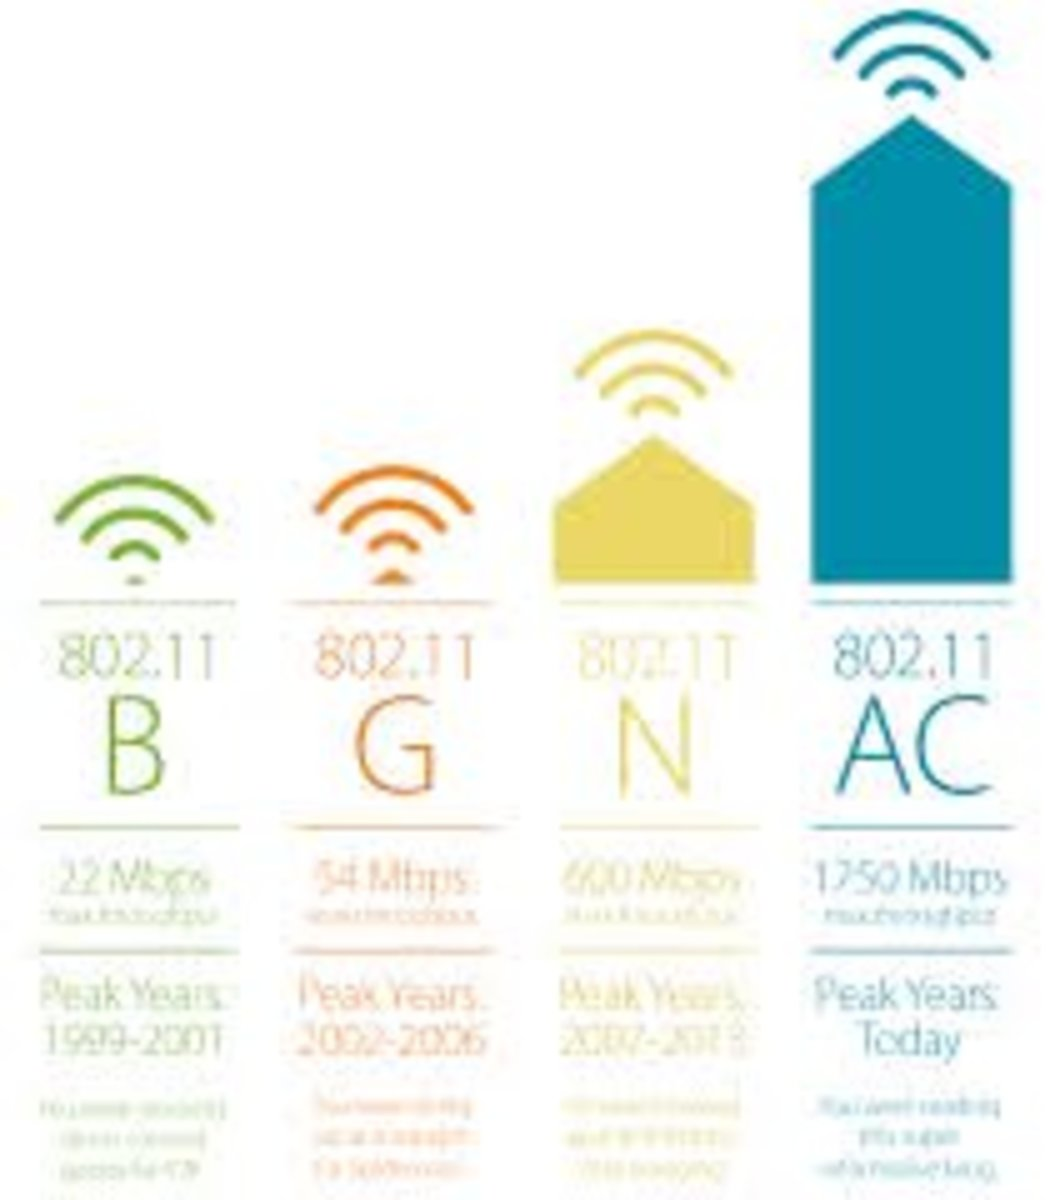 The 802.11 standards govern the speed of wireless routers